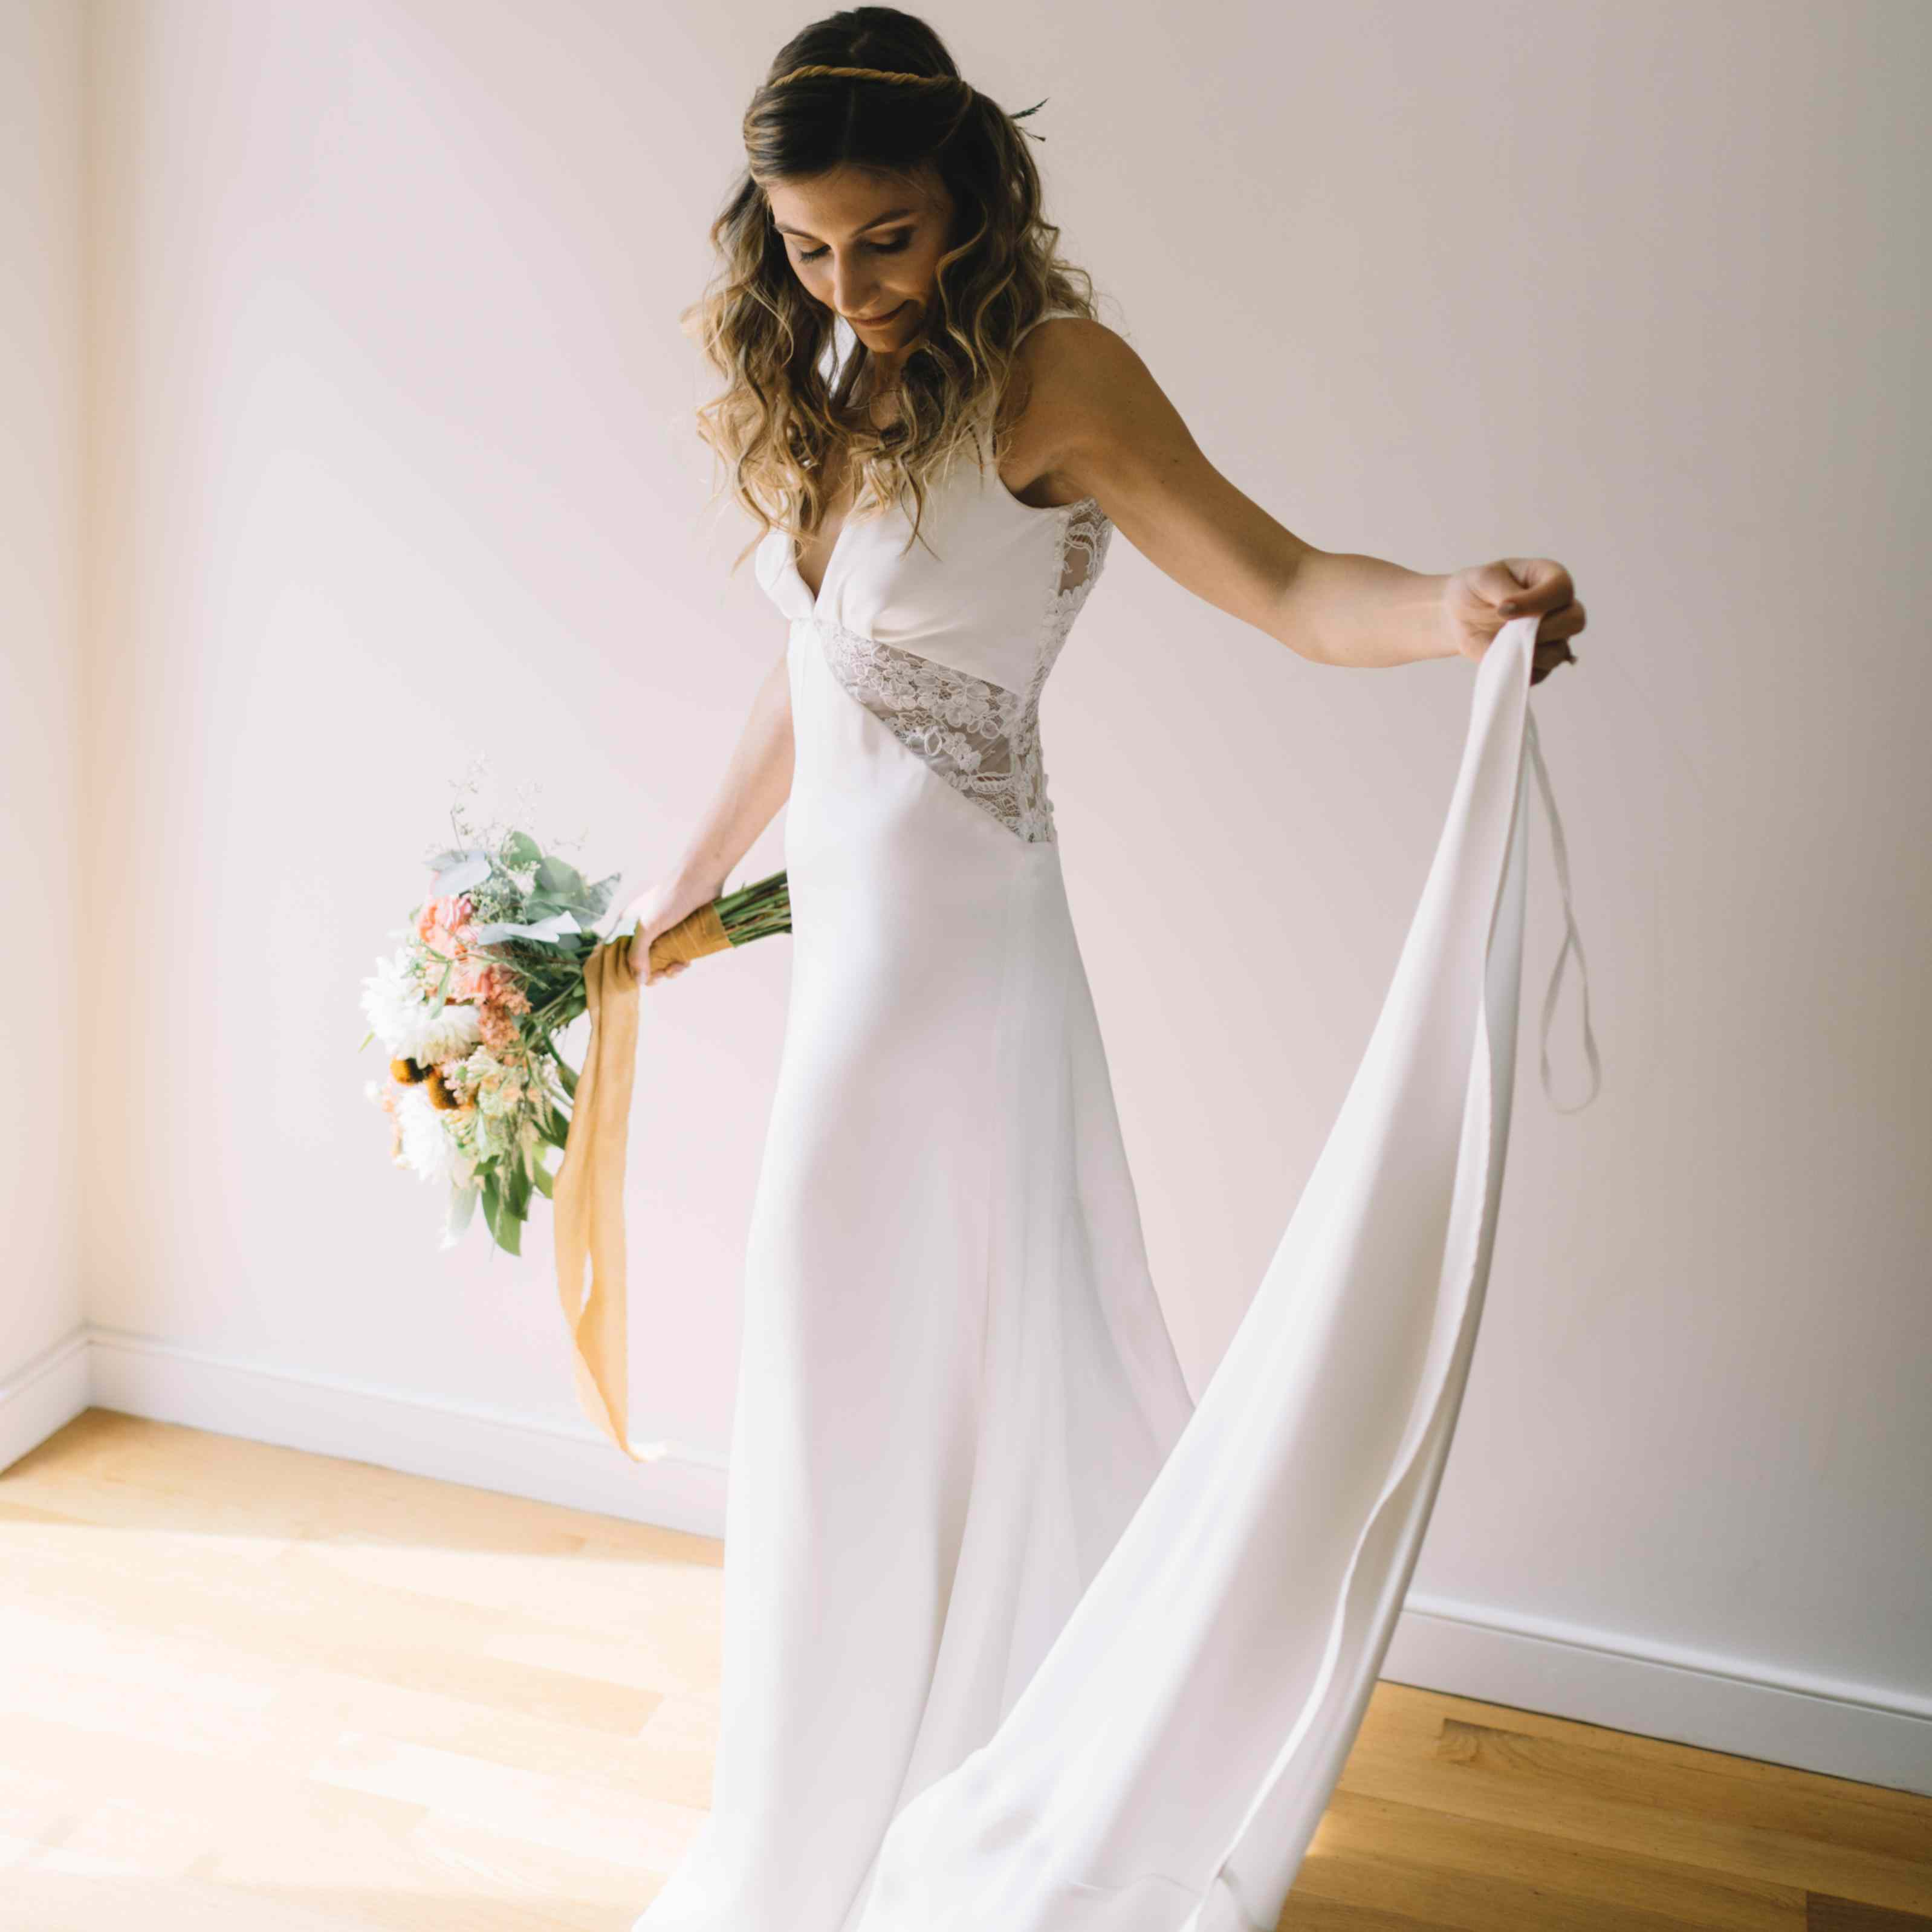 details for clearance prices best value Wedding Dress Fabric Guide: The A to Z of Wedding Dress ...